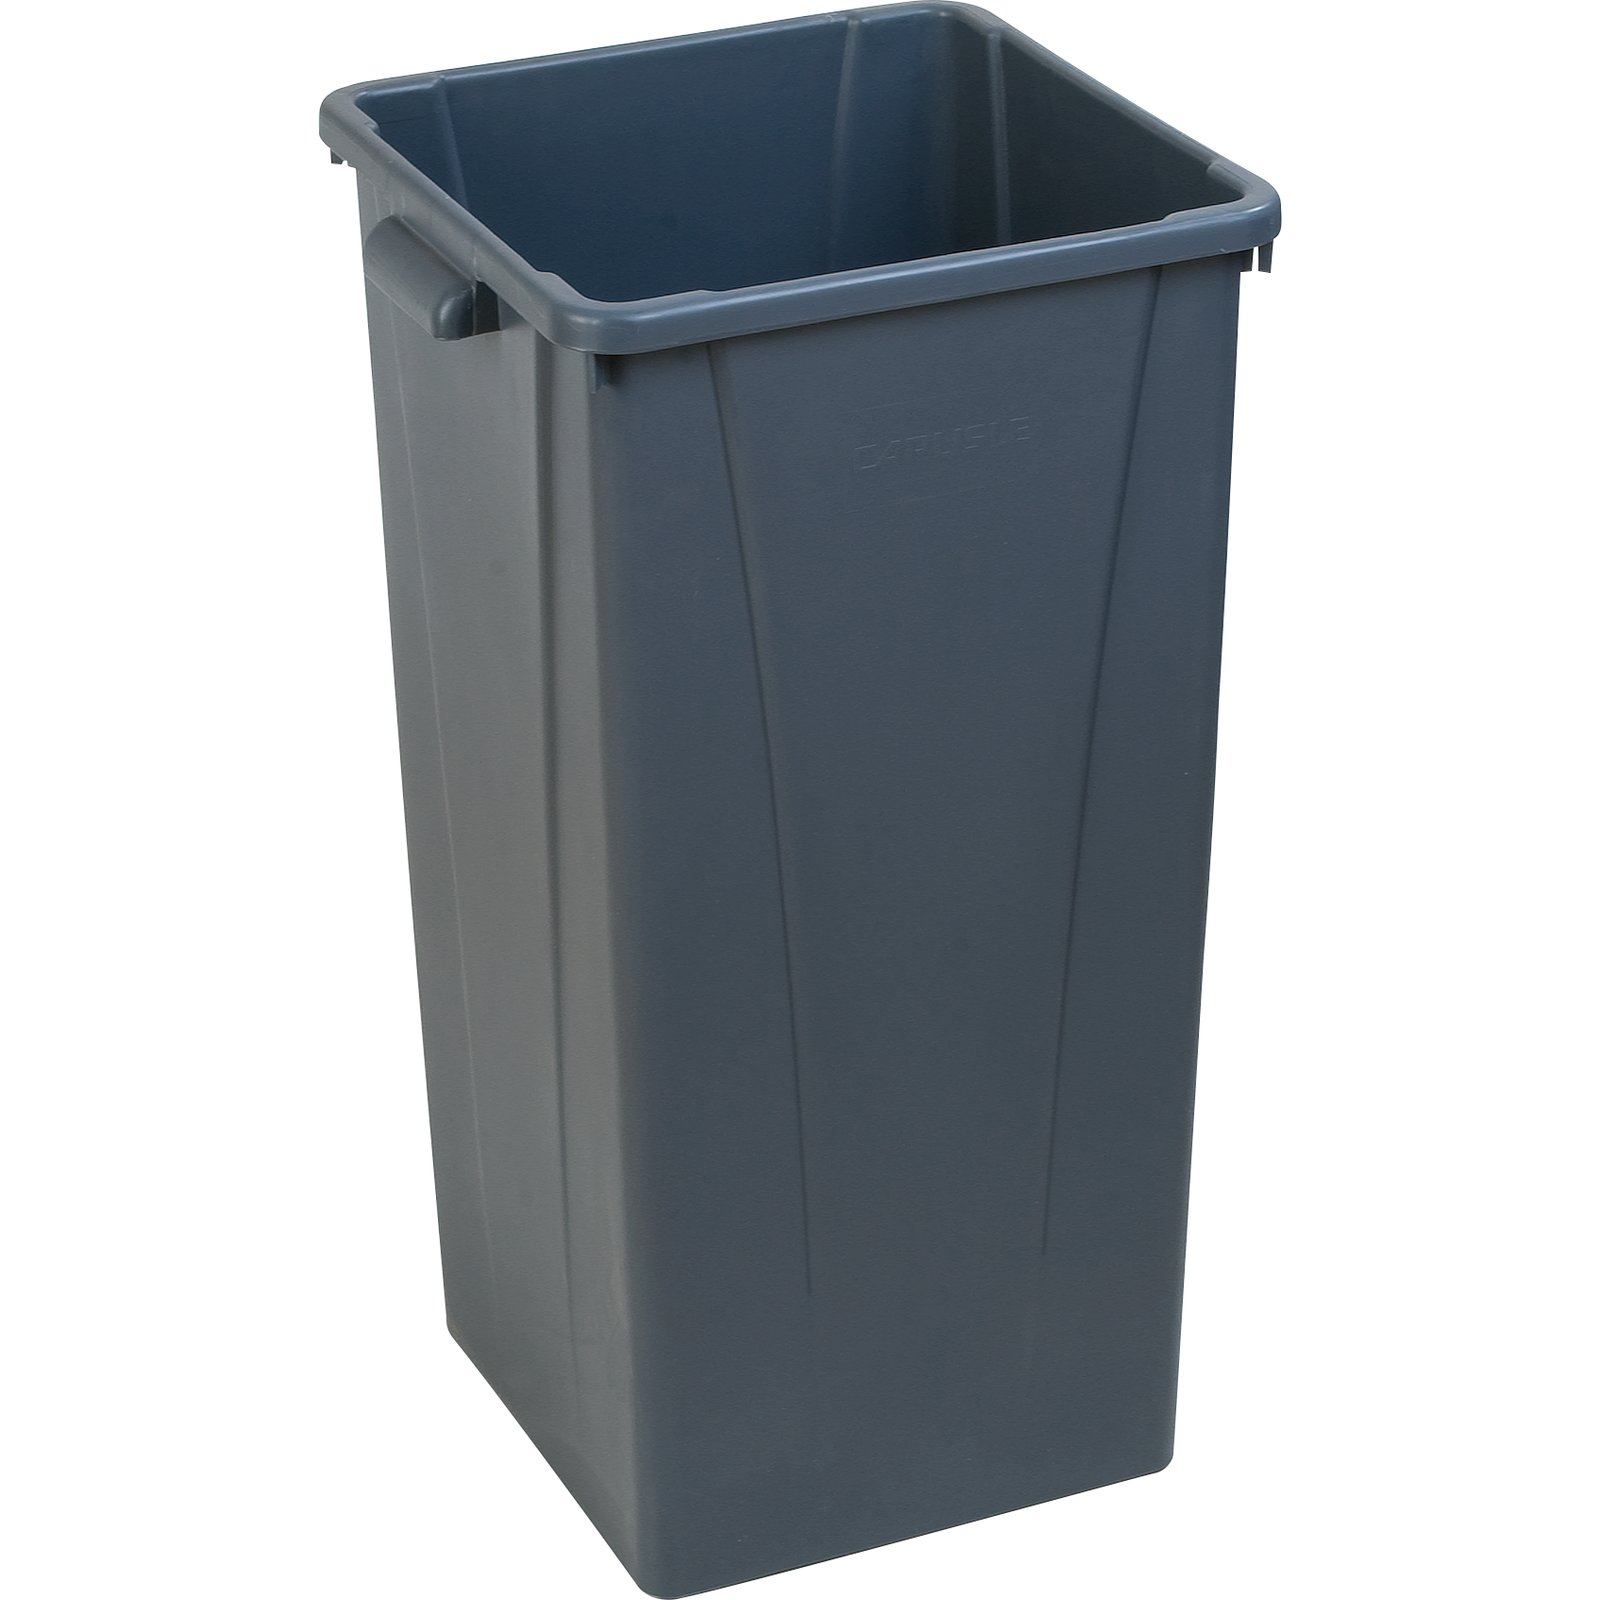 3700-45 Gray Square 23gal Waste Container